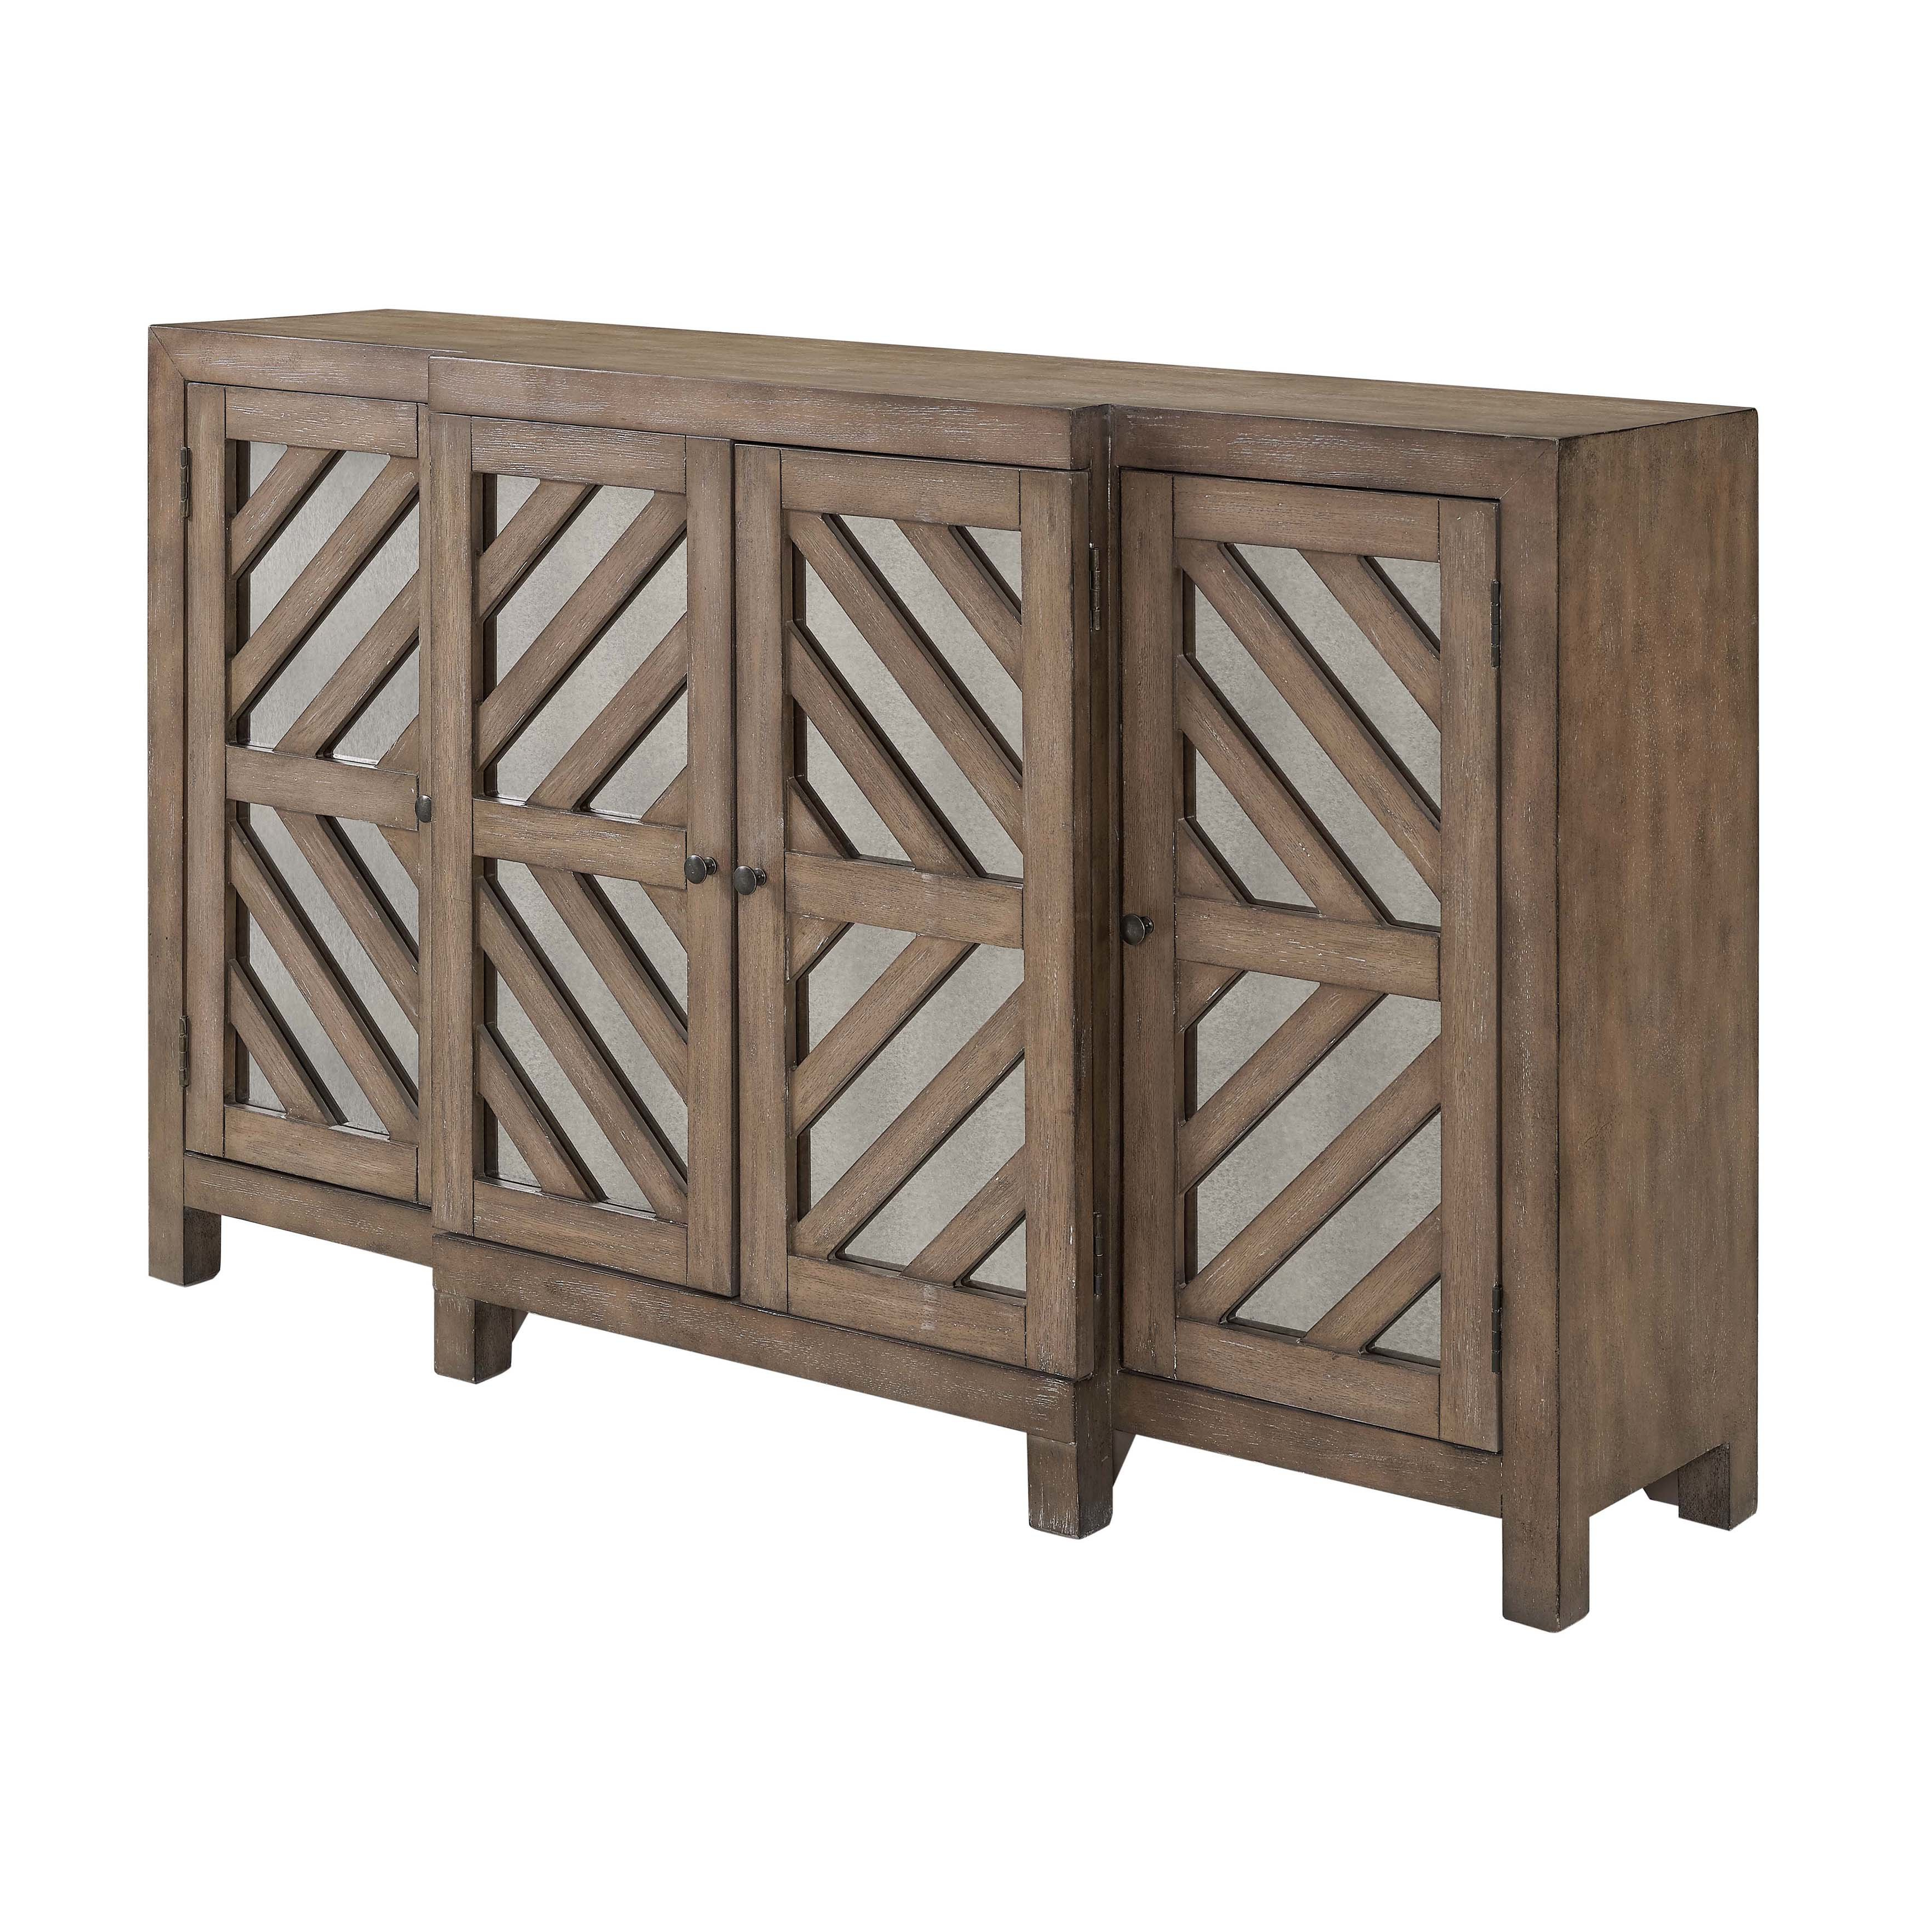 Modern & Contemporary Deny Credenza | Allmodern Throughout Lainey Credenzas (View 6 of 20)